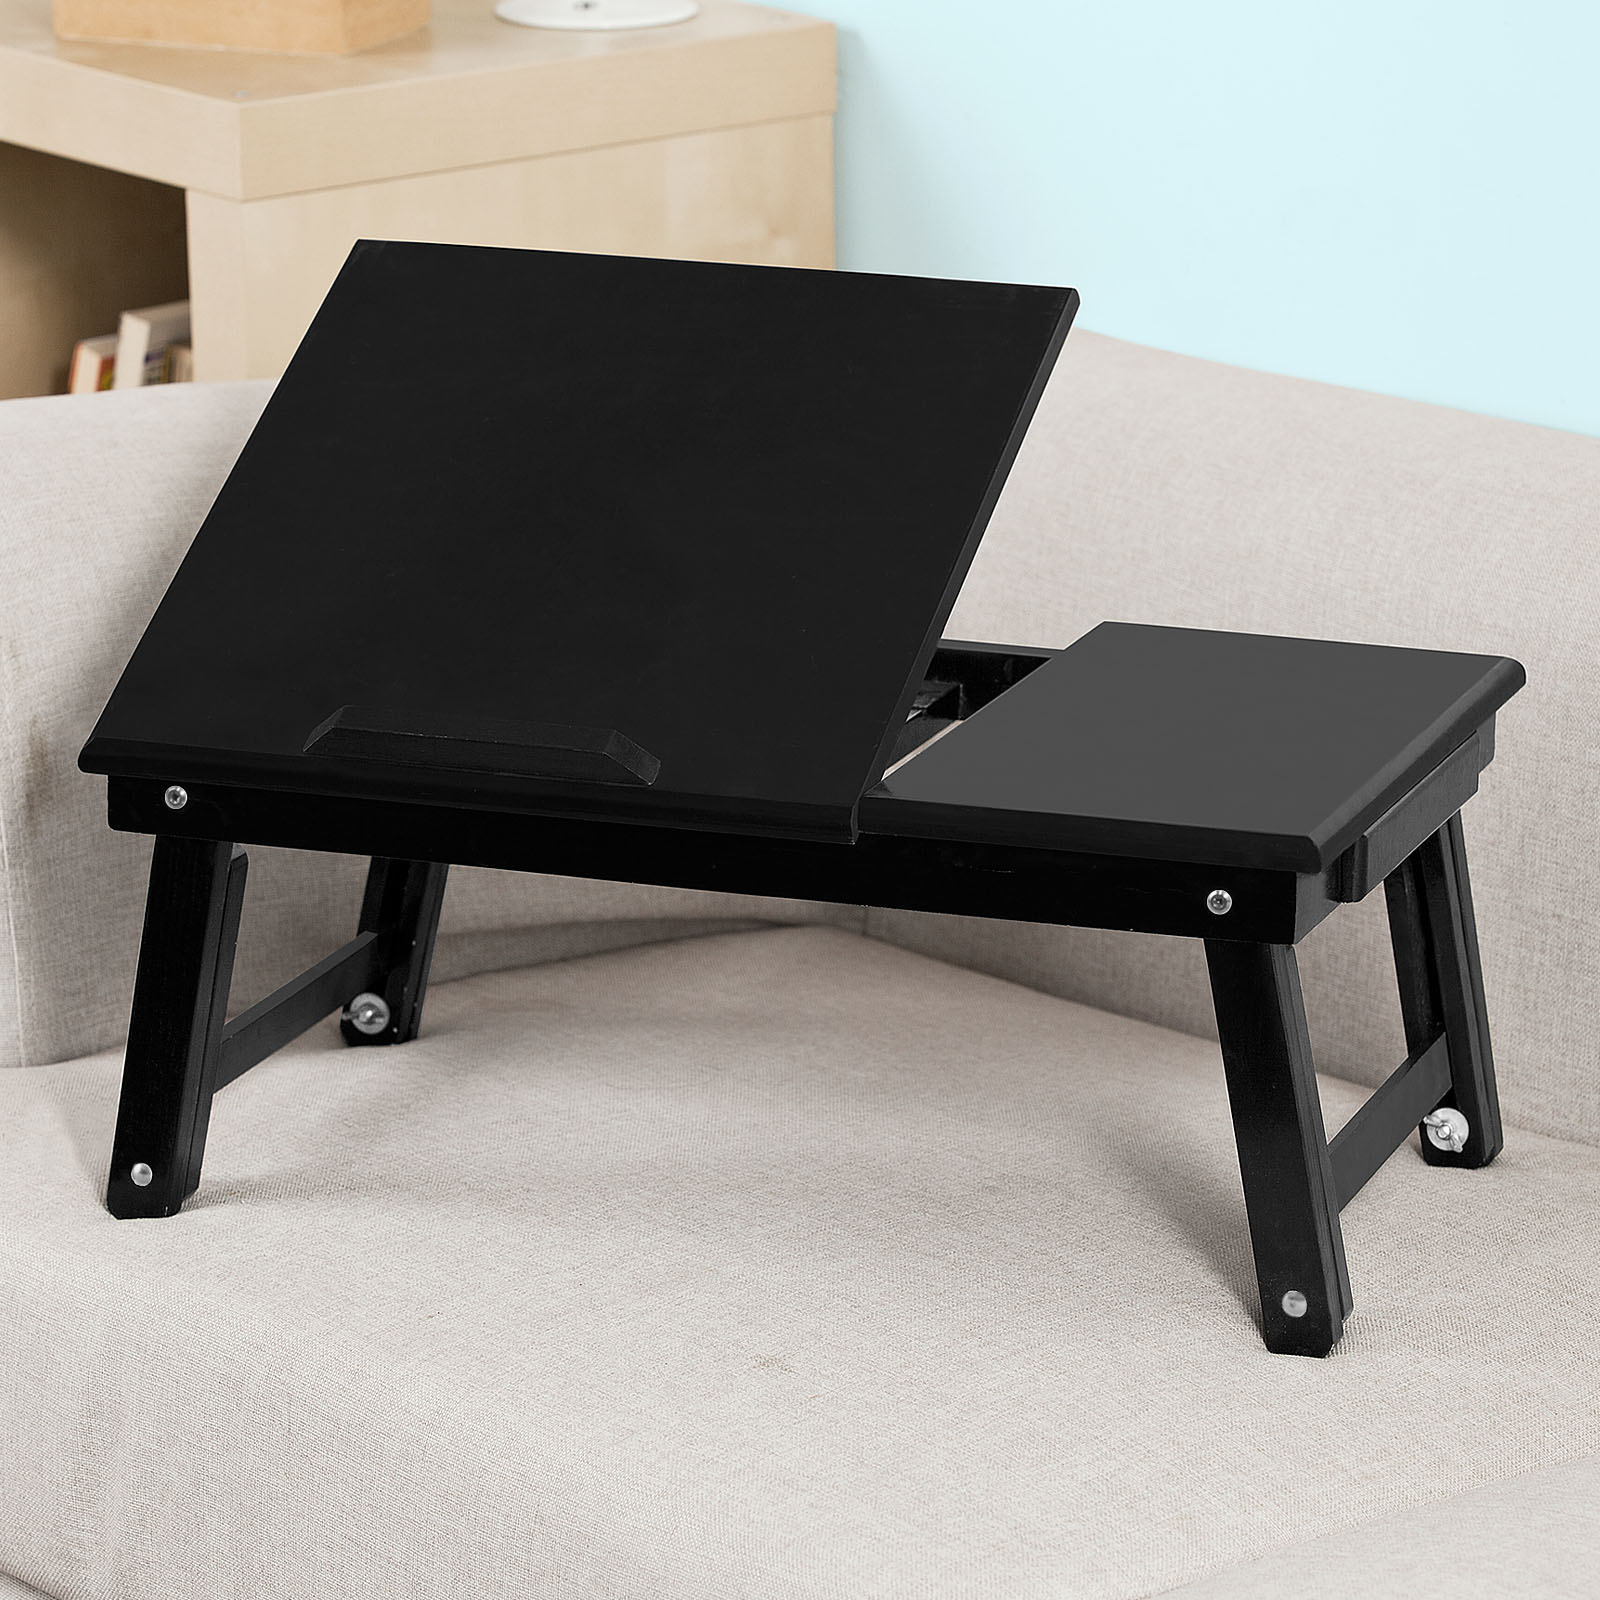 Haotian Wood Foldable Notebook Laptop Table,Folding Food Bed Lap Top Tray Table Desk,FBT02-SCH